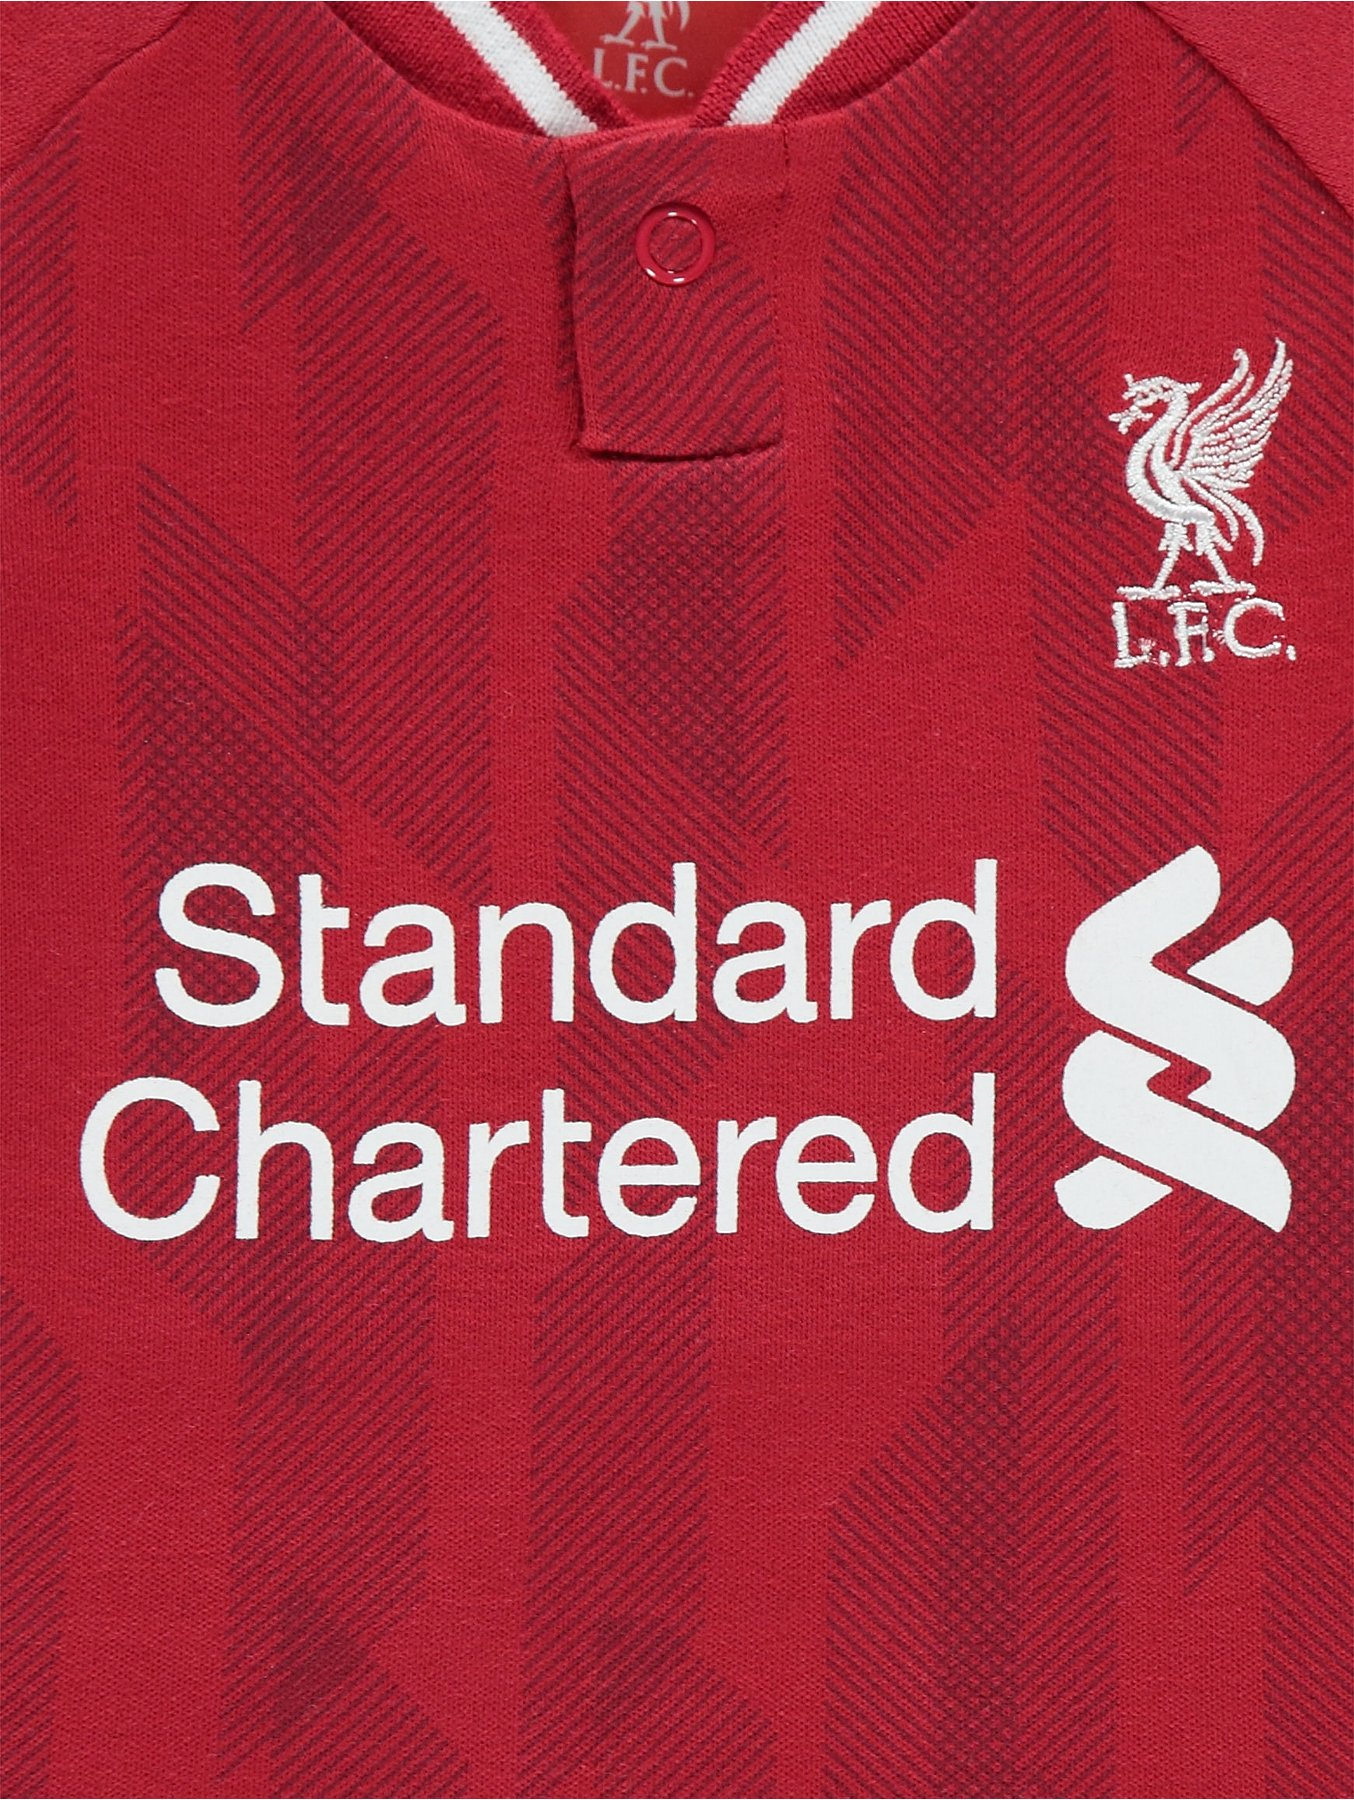 8336ab6e7 Official Liverpool FC T-Shirt and Shorts Outfit. Reset